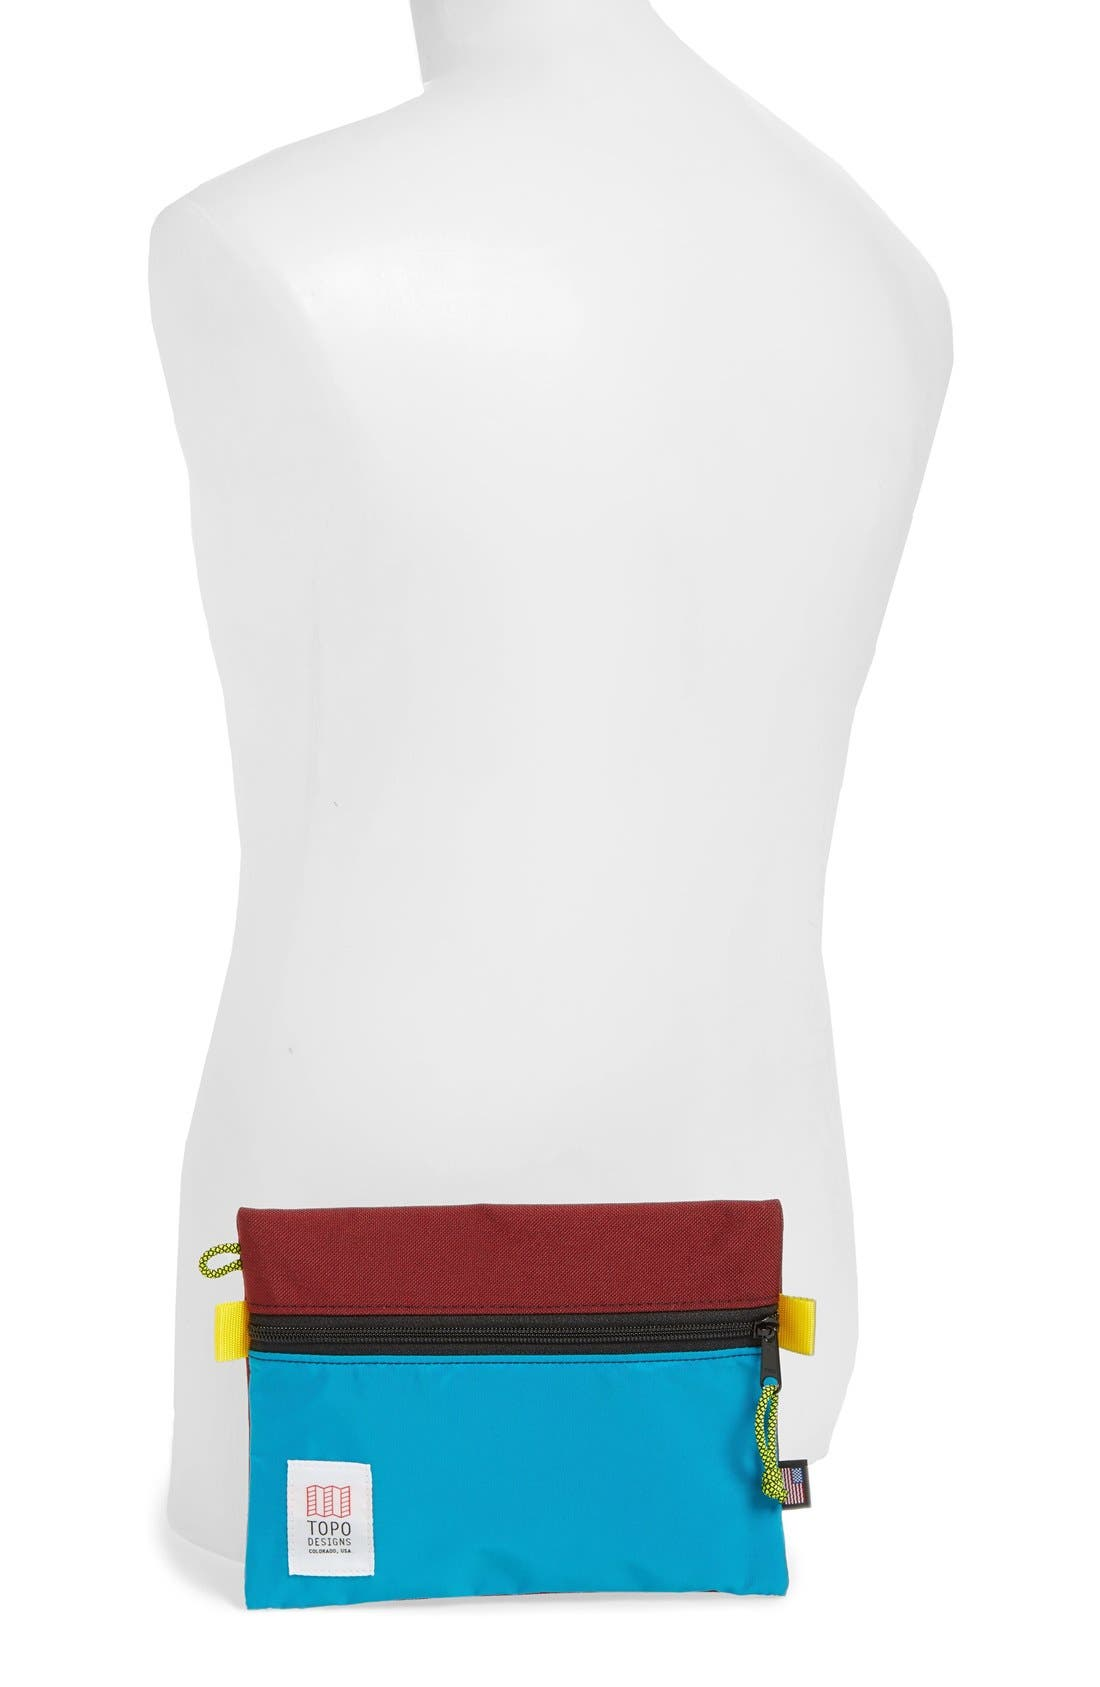 Topo Designs Accessory Bag,                             Alternate thumbnail 2, color,                             Burgundy/ Turquoise